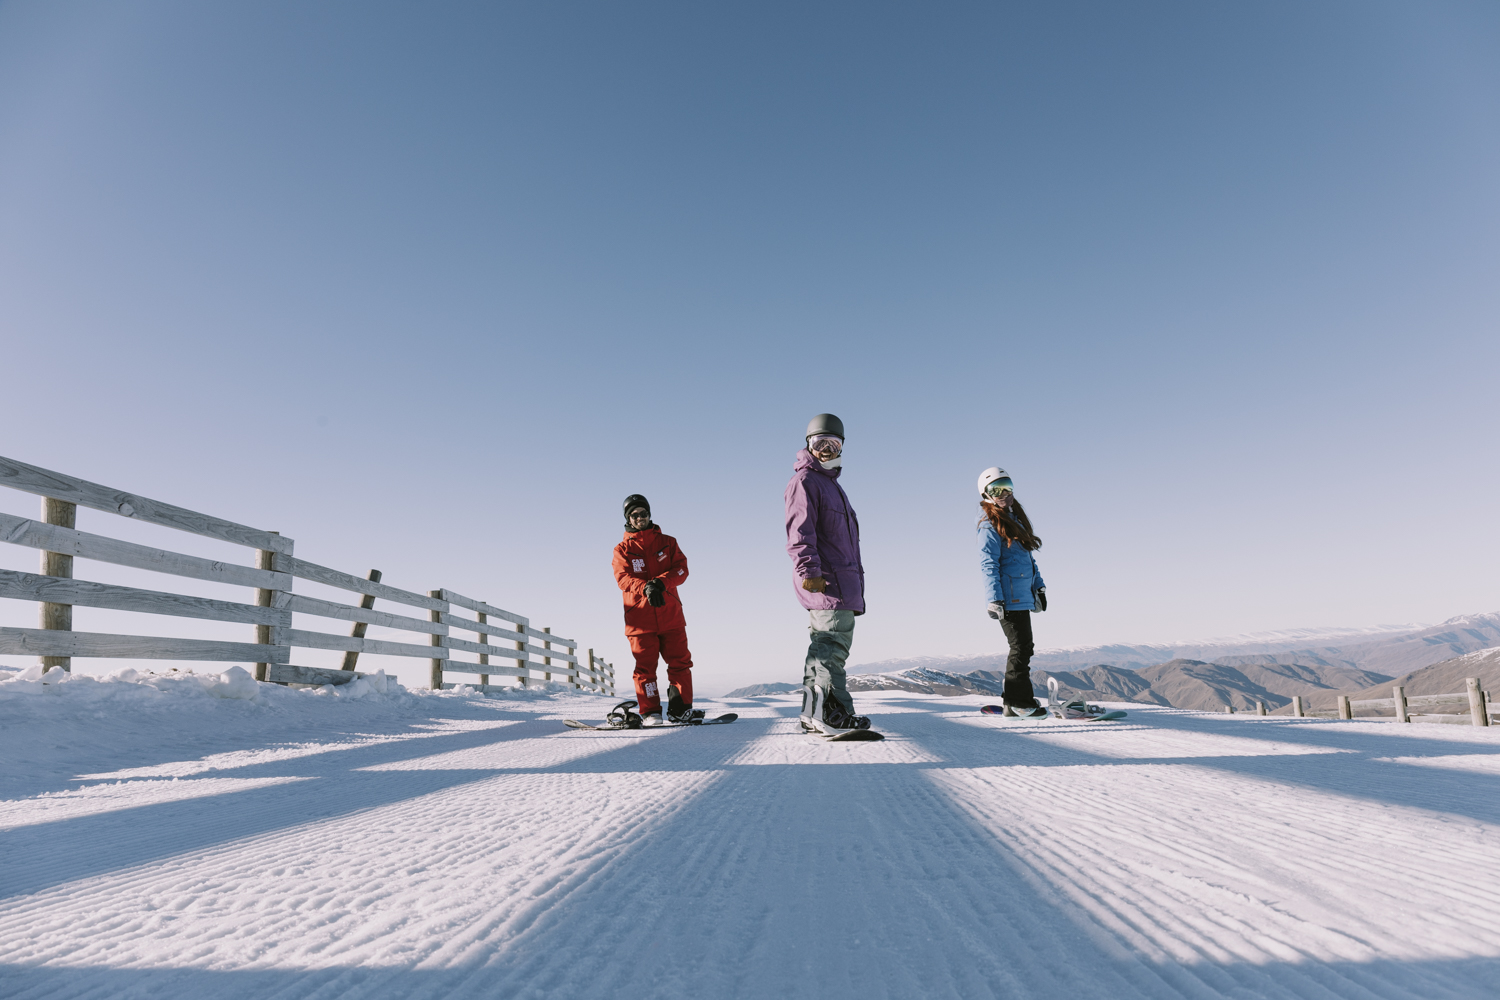 cardrona-group lessons-level guide-snowboard lesson-learn to snowboard-howtosnowboard